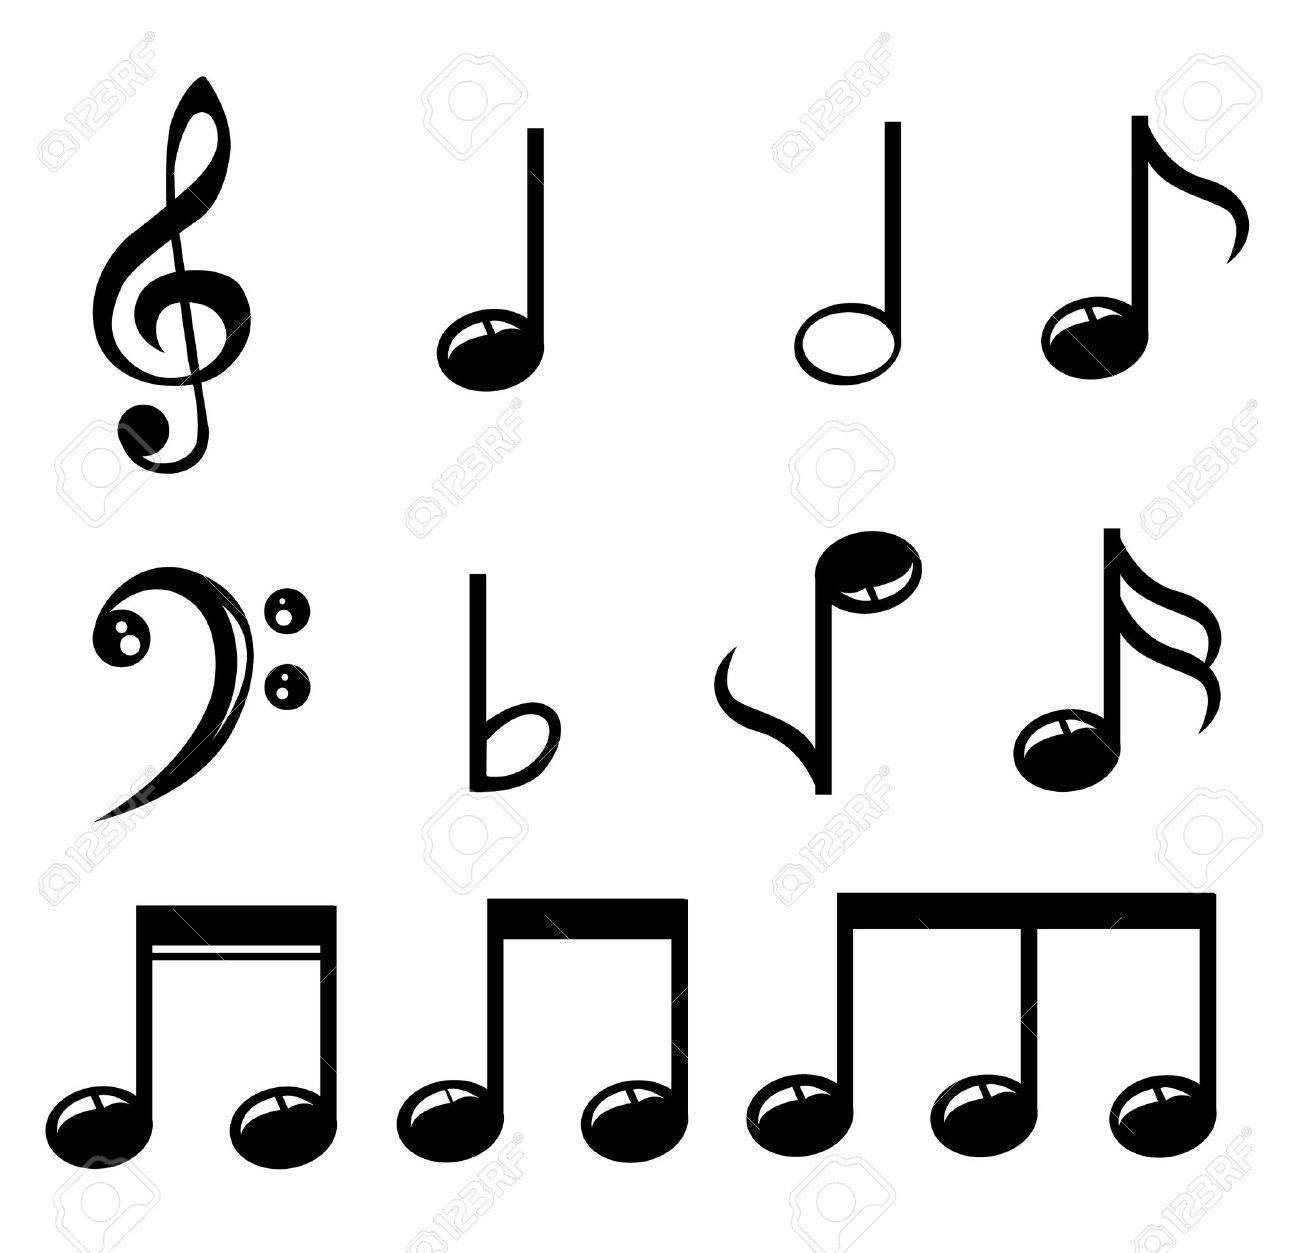 Set of music notes vector - 50898491